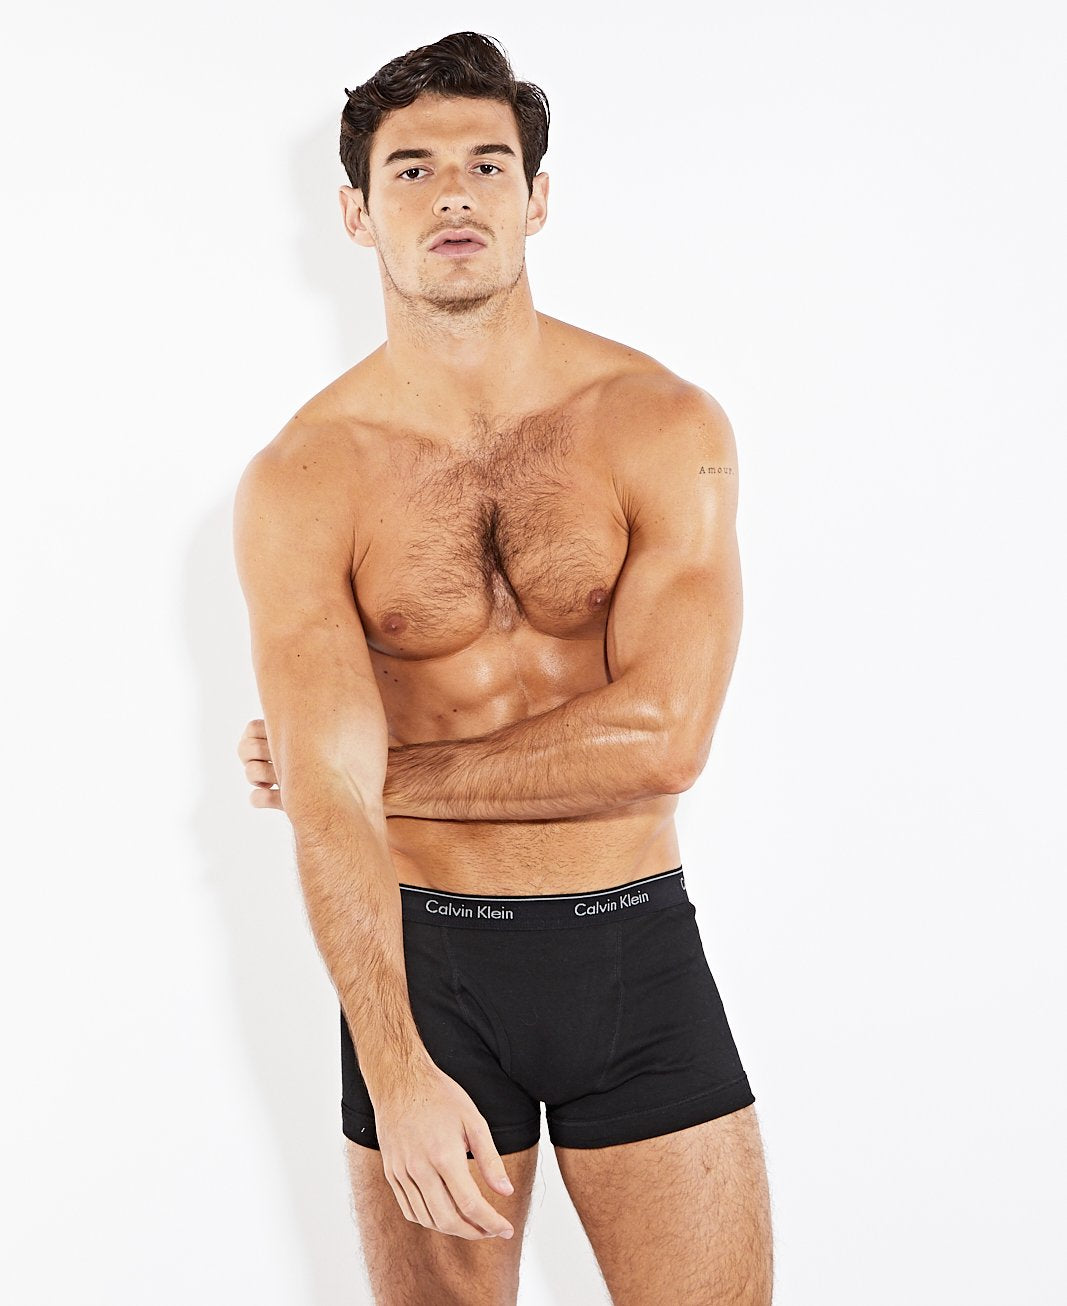 Calvin Klein 3 Pack Cotton Fly Trunks Black